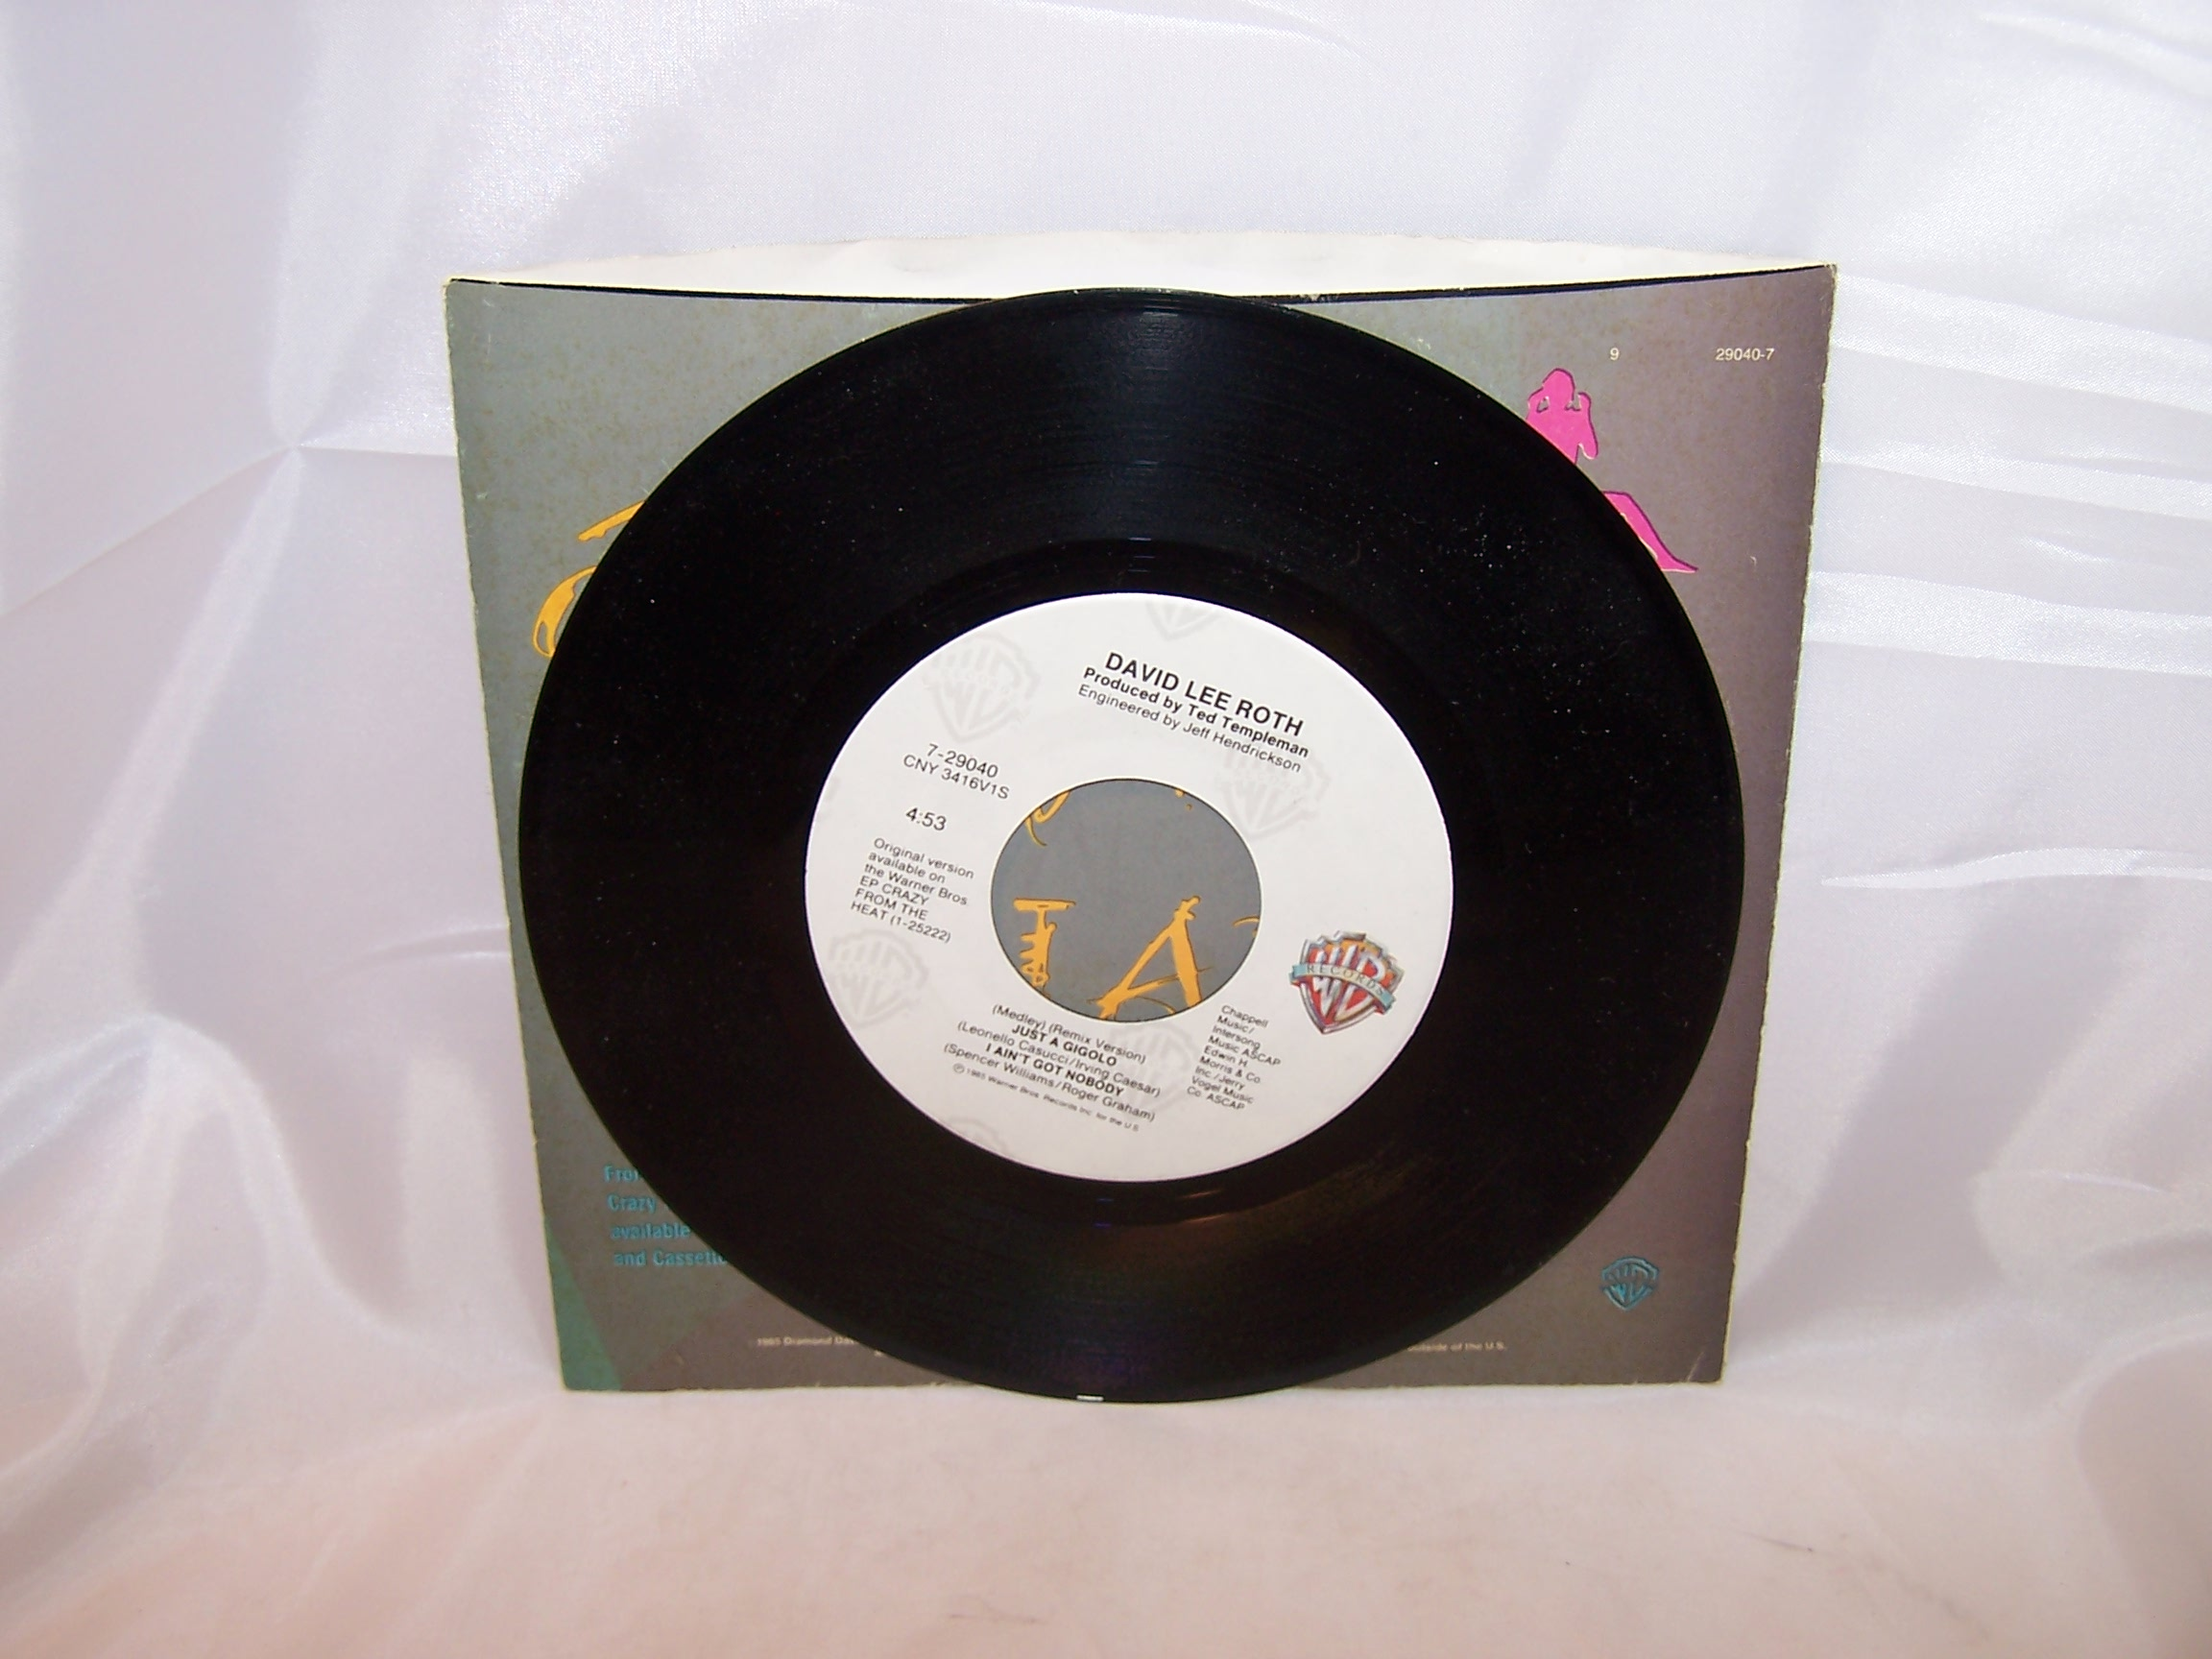 Image 2 of David Lee Roth, Just a Gigolo, 45 RPM Record, 1985